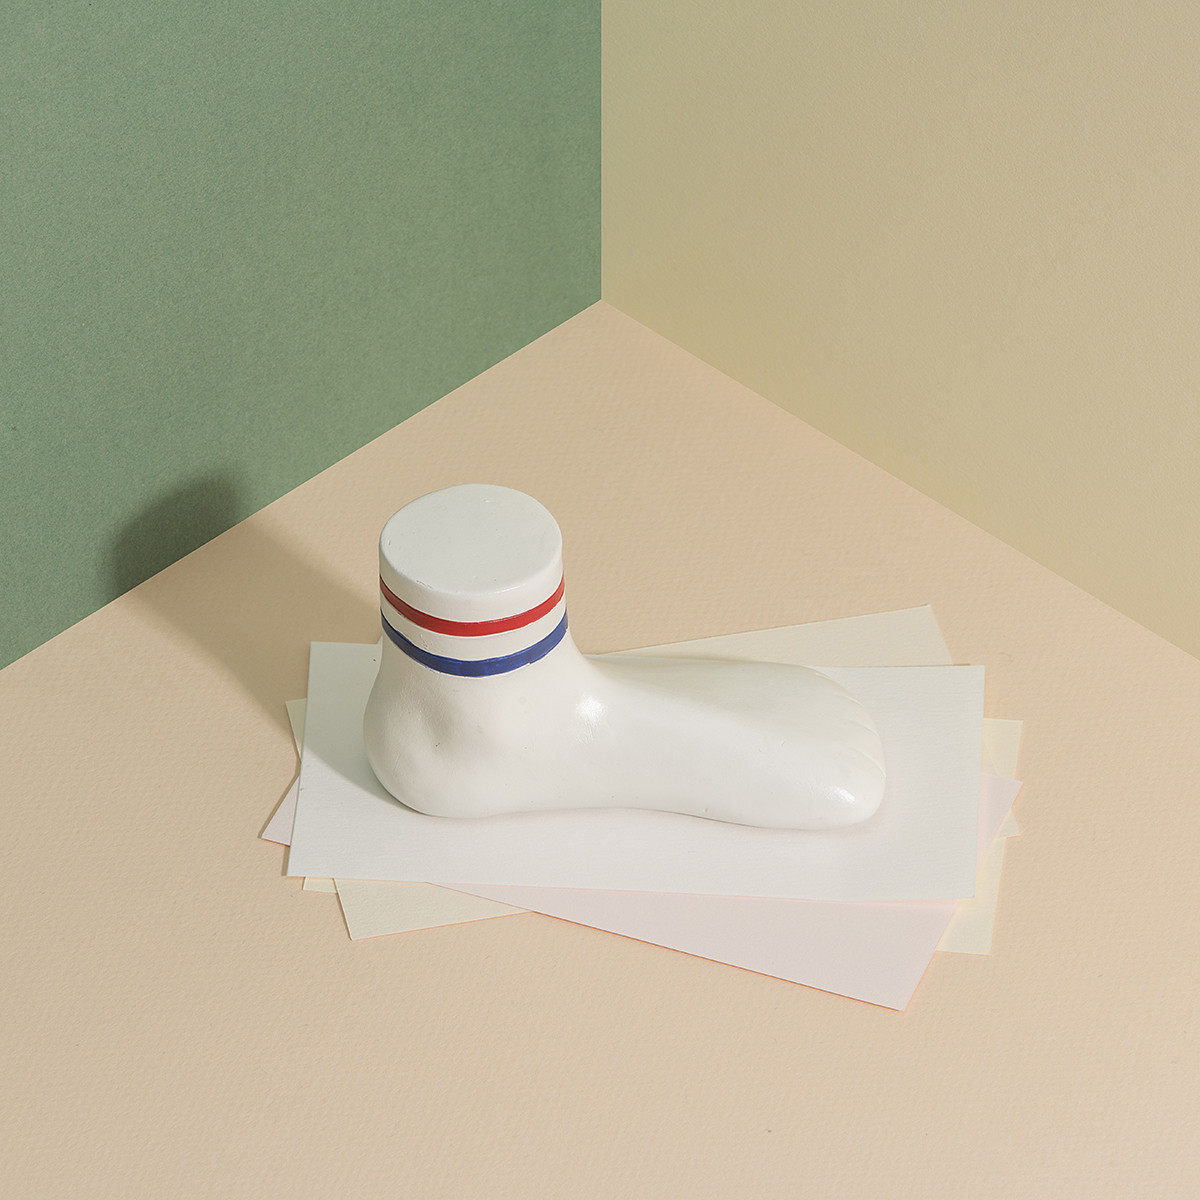 Unboring Paperweight Sock image